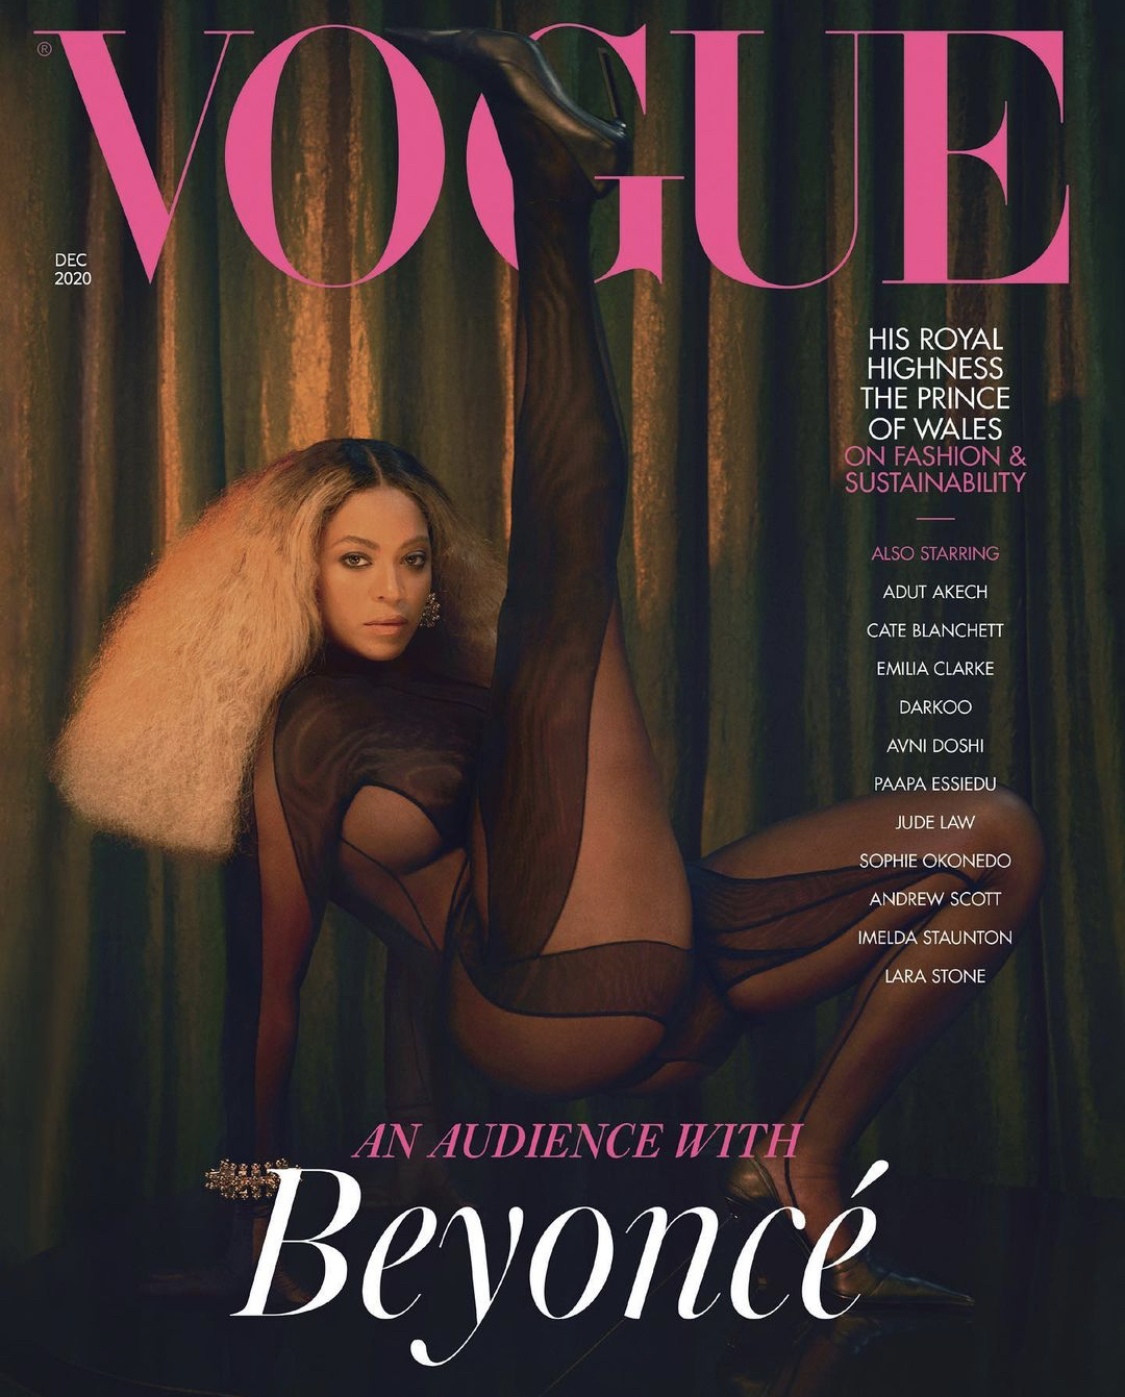 Beyonce for British VOGUE December 2020 Issue3